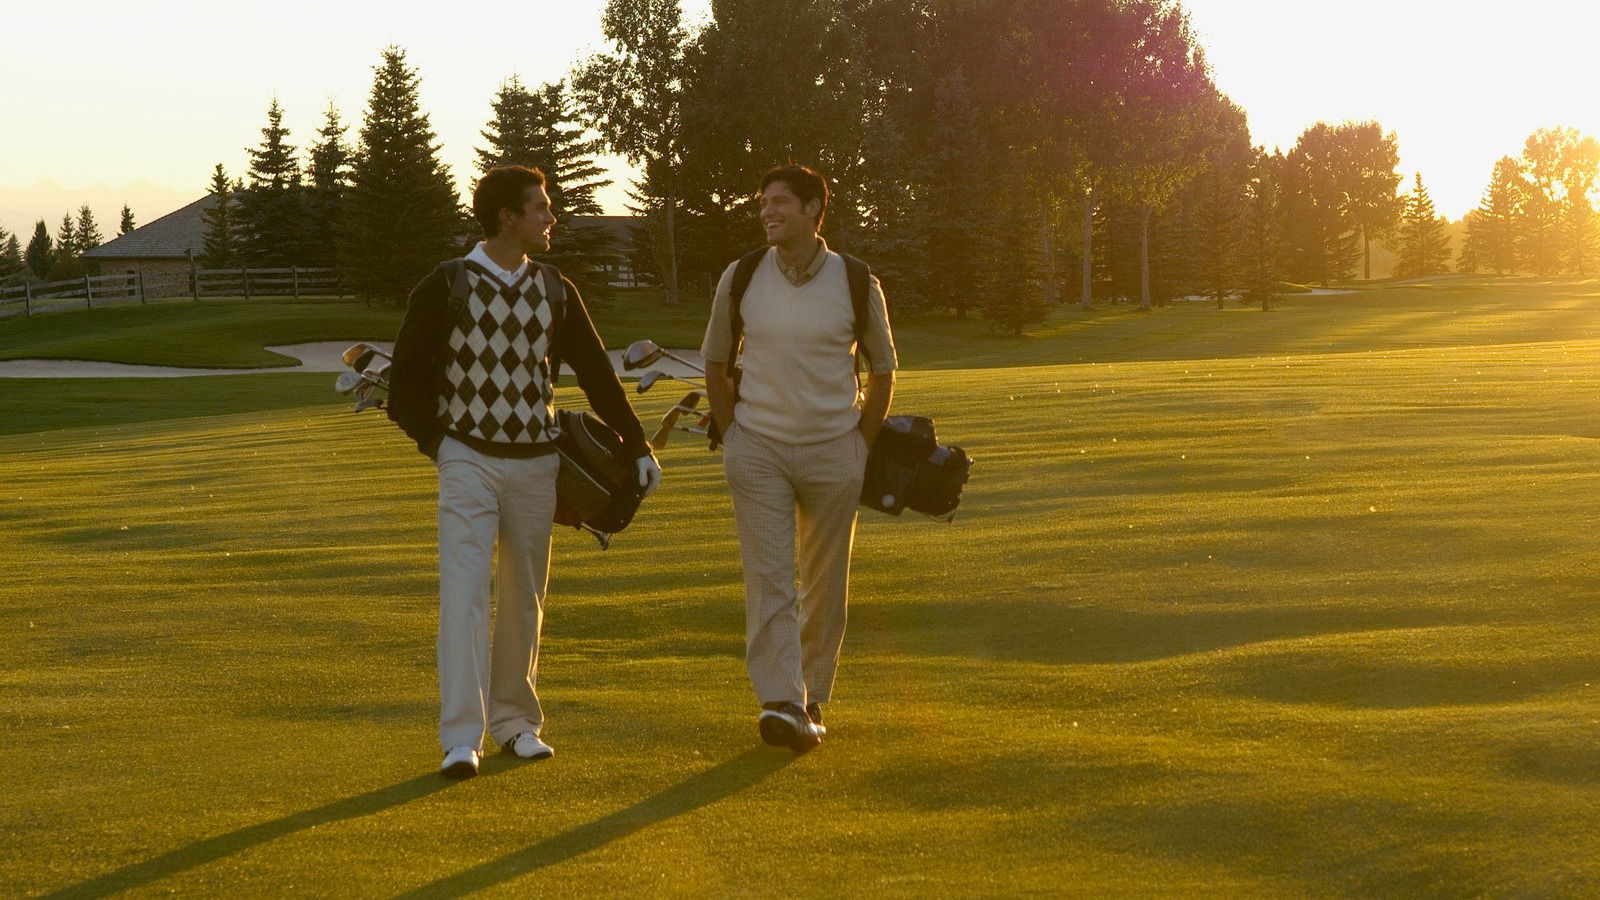 Things to do in Anchorage - Golf